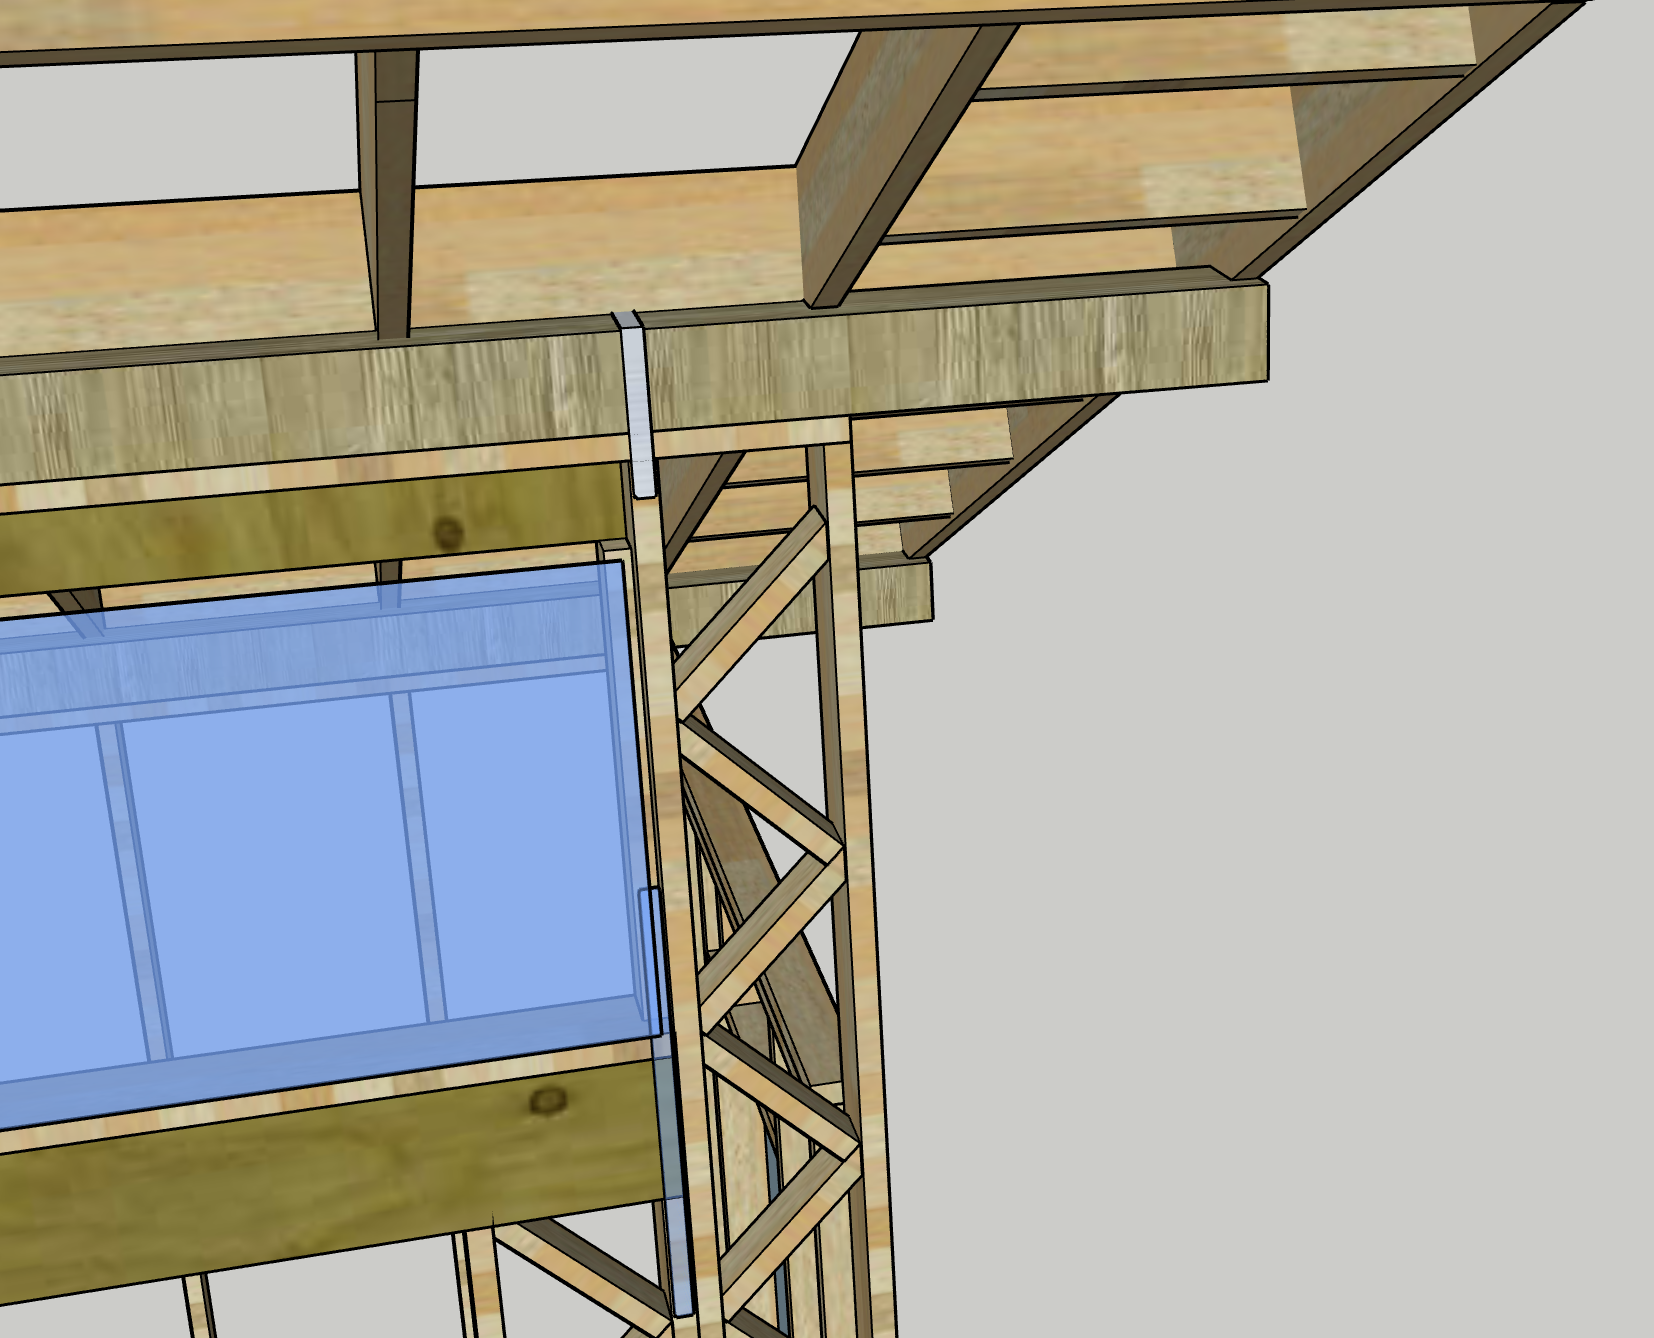 Shed / workshop framing design--is it too ambitious?-screen-shot-2020-04-25-3.38.13-pm.png